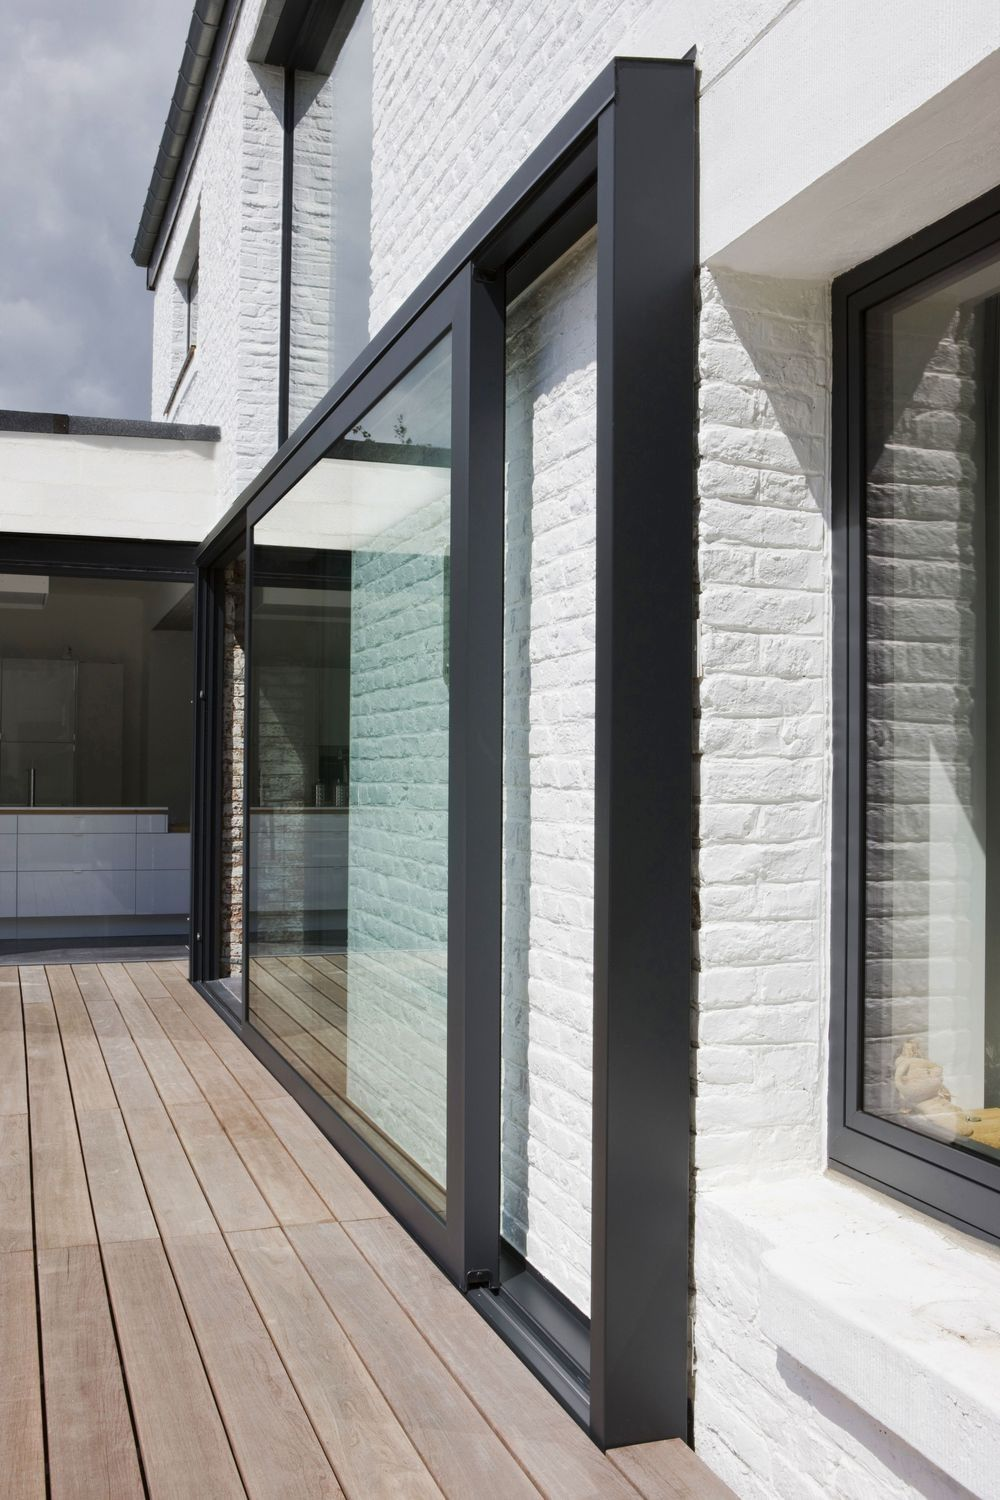 House design with sliding window  window  casa fer  pinterest  window doors and architecture